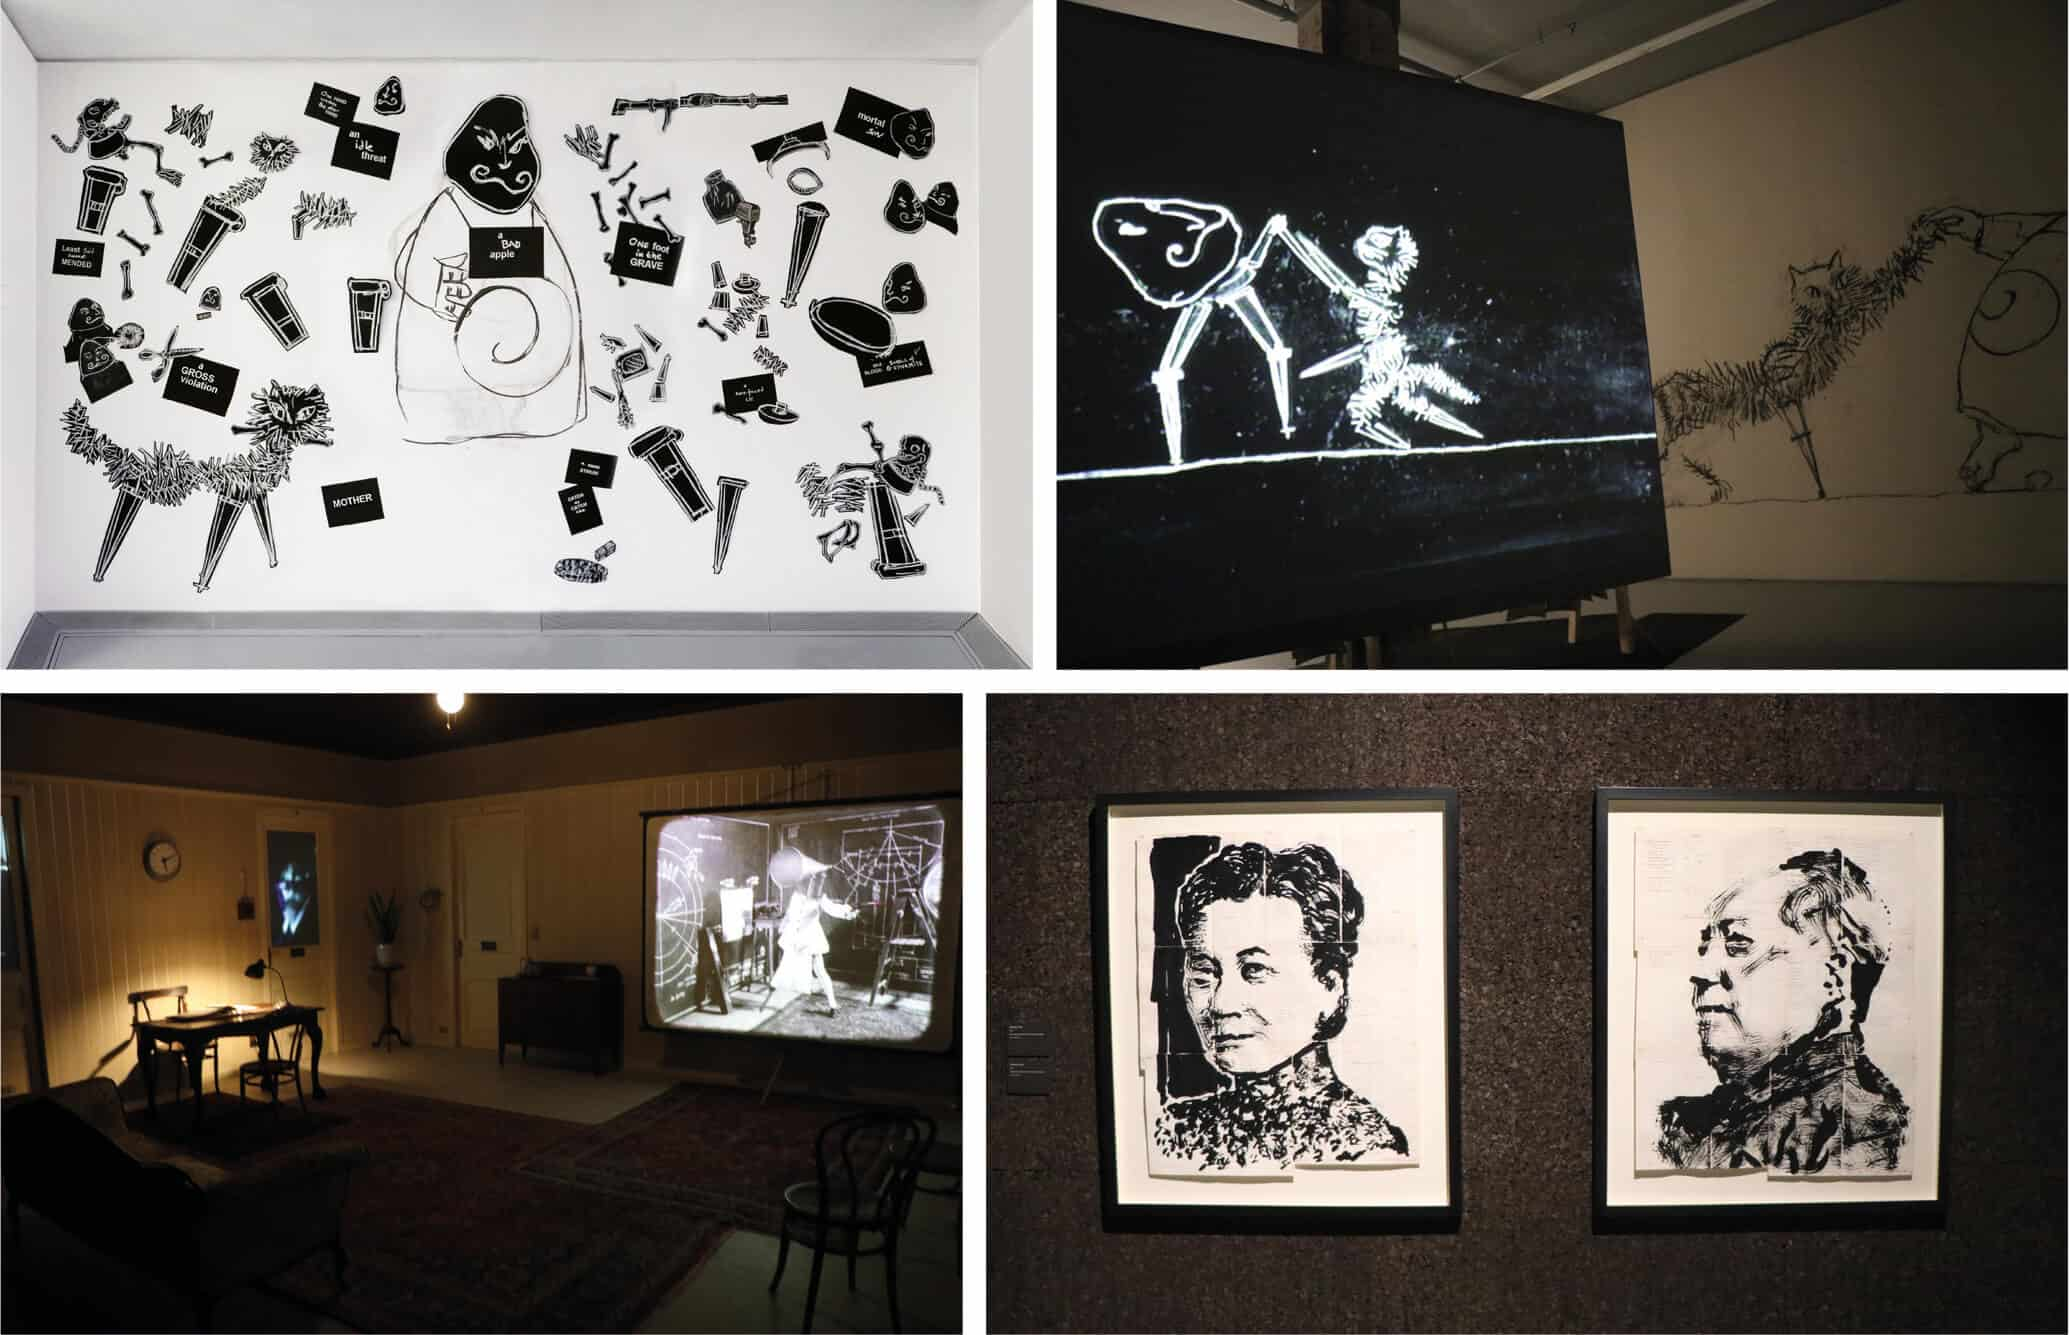 Wall drawings in 'Ubu Tells The Truth' room at Zeitz MOCAA. © Brendon Bell-Roberts & ART AFRICA. Installation view of Ubu Tells The Truth, 1997, at Zeitz MOCAA. © Brendon Bell-Roberts & ART AFRICA. Installation view of Untitled (Madame Mao), Indian ink on found pages, 90,5 x 74cm (left). Untitled (Chairman Mao), 2016. Indian ink on found pages, 91,5 x 7cm (right). © Brendon Bell-Roberts & ART AFRICA. Installation view of O Sentimental Machine, 2015, at Zeitz MOCAA. © Brendon Bell-Roberts & ART AFRICA